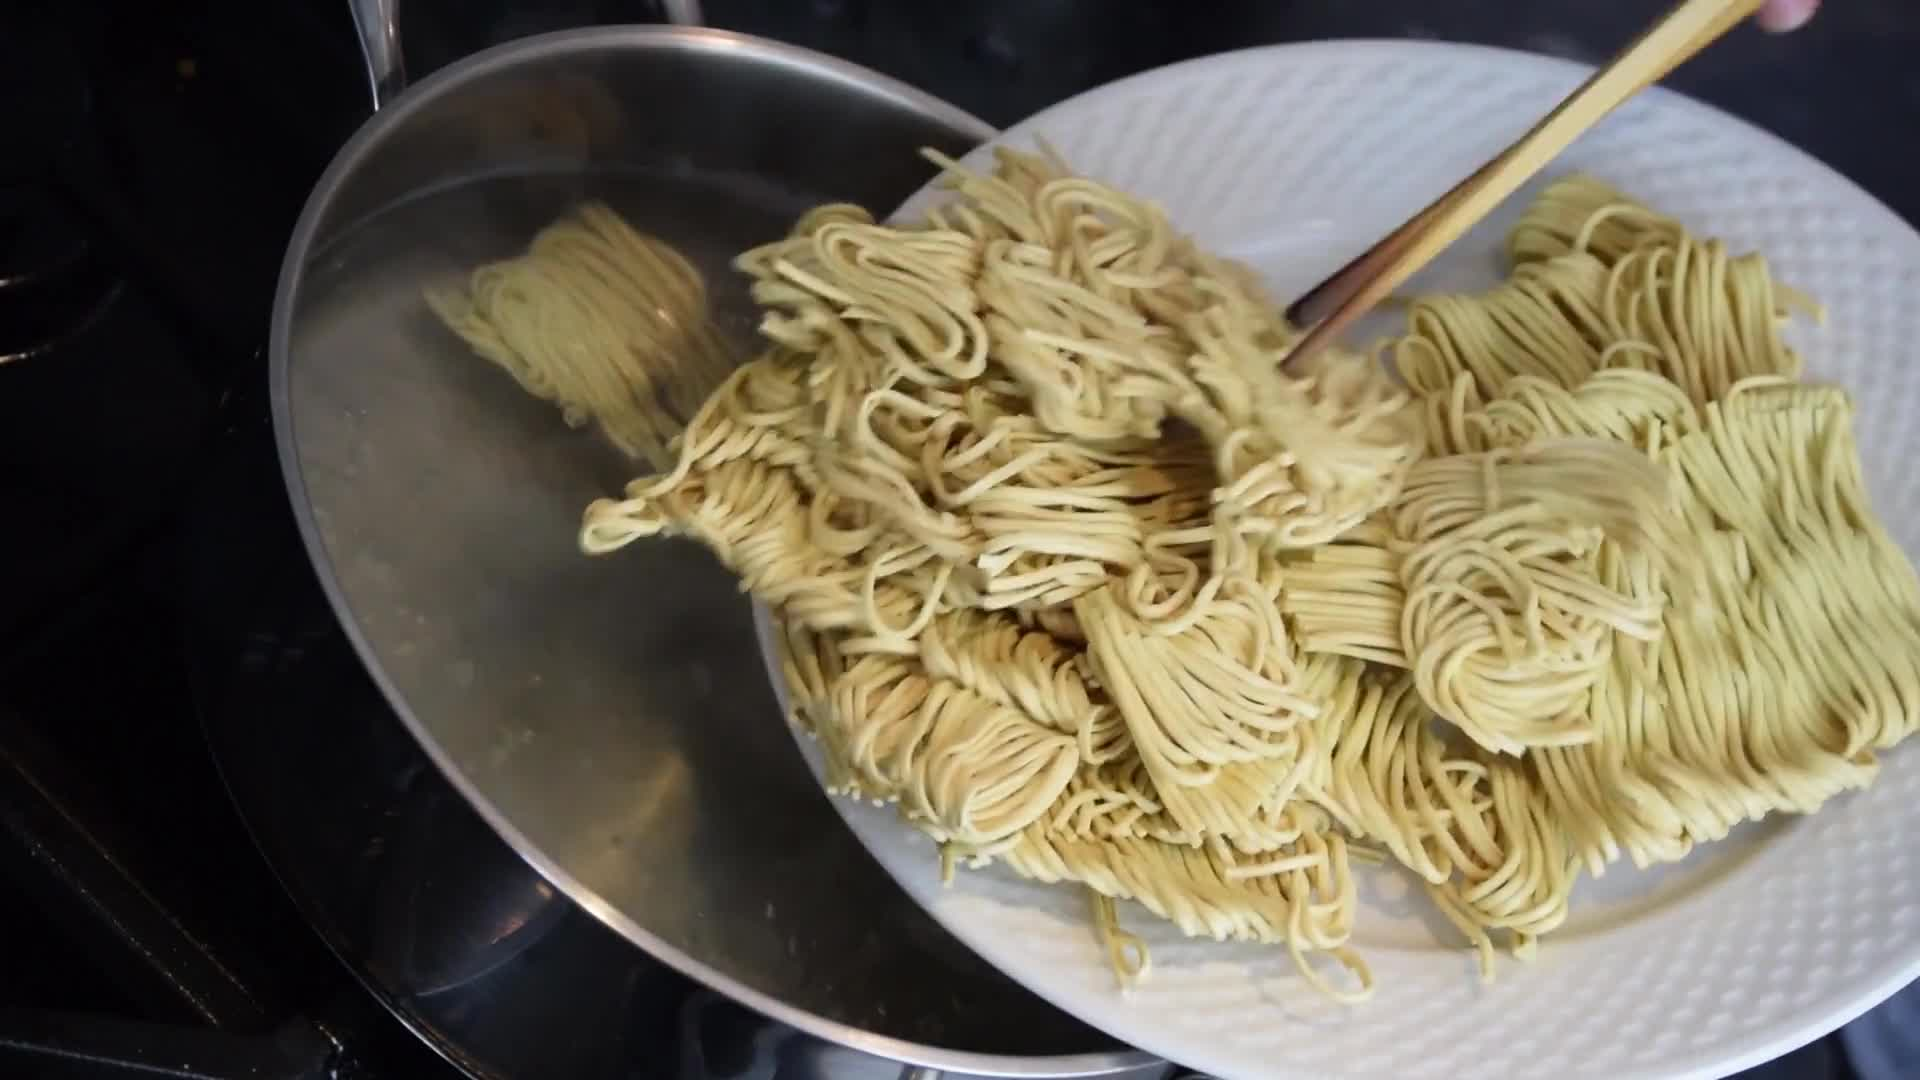 Cooking noodles food meal dish